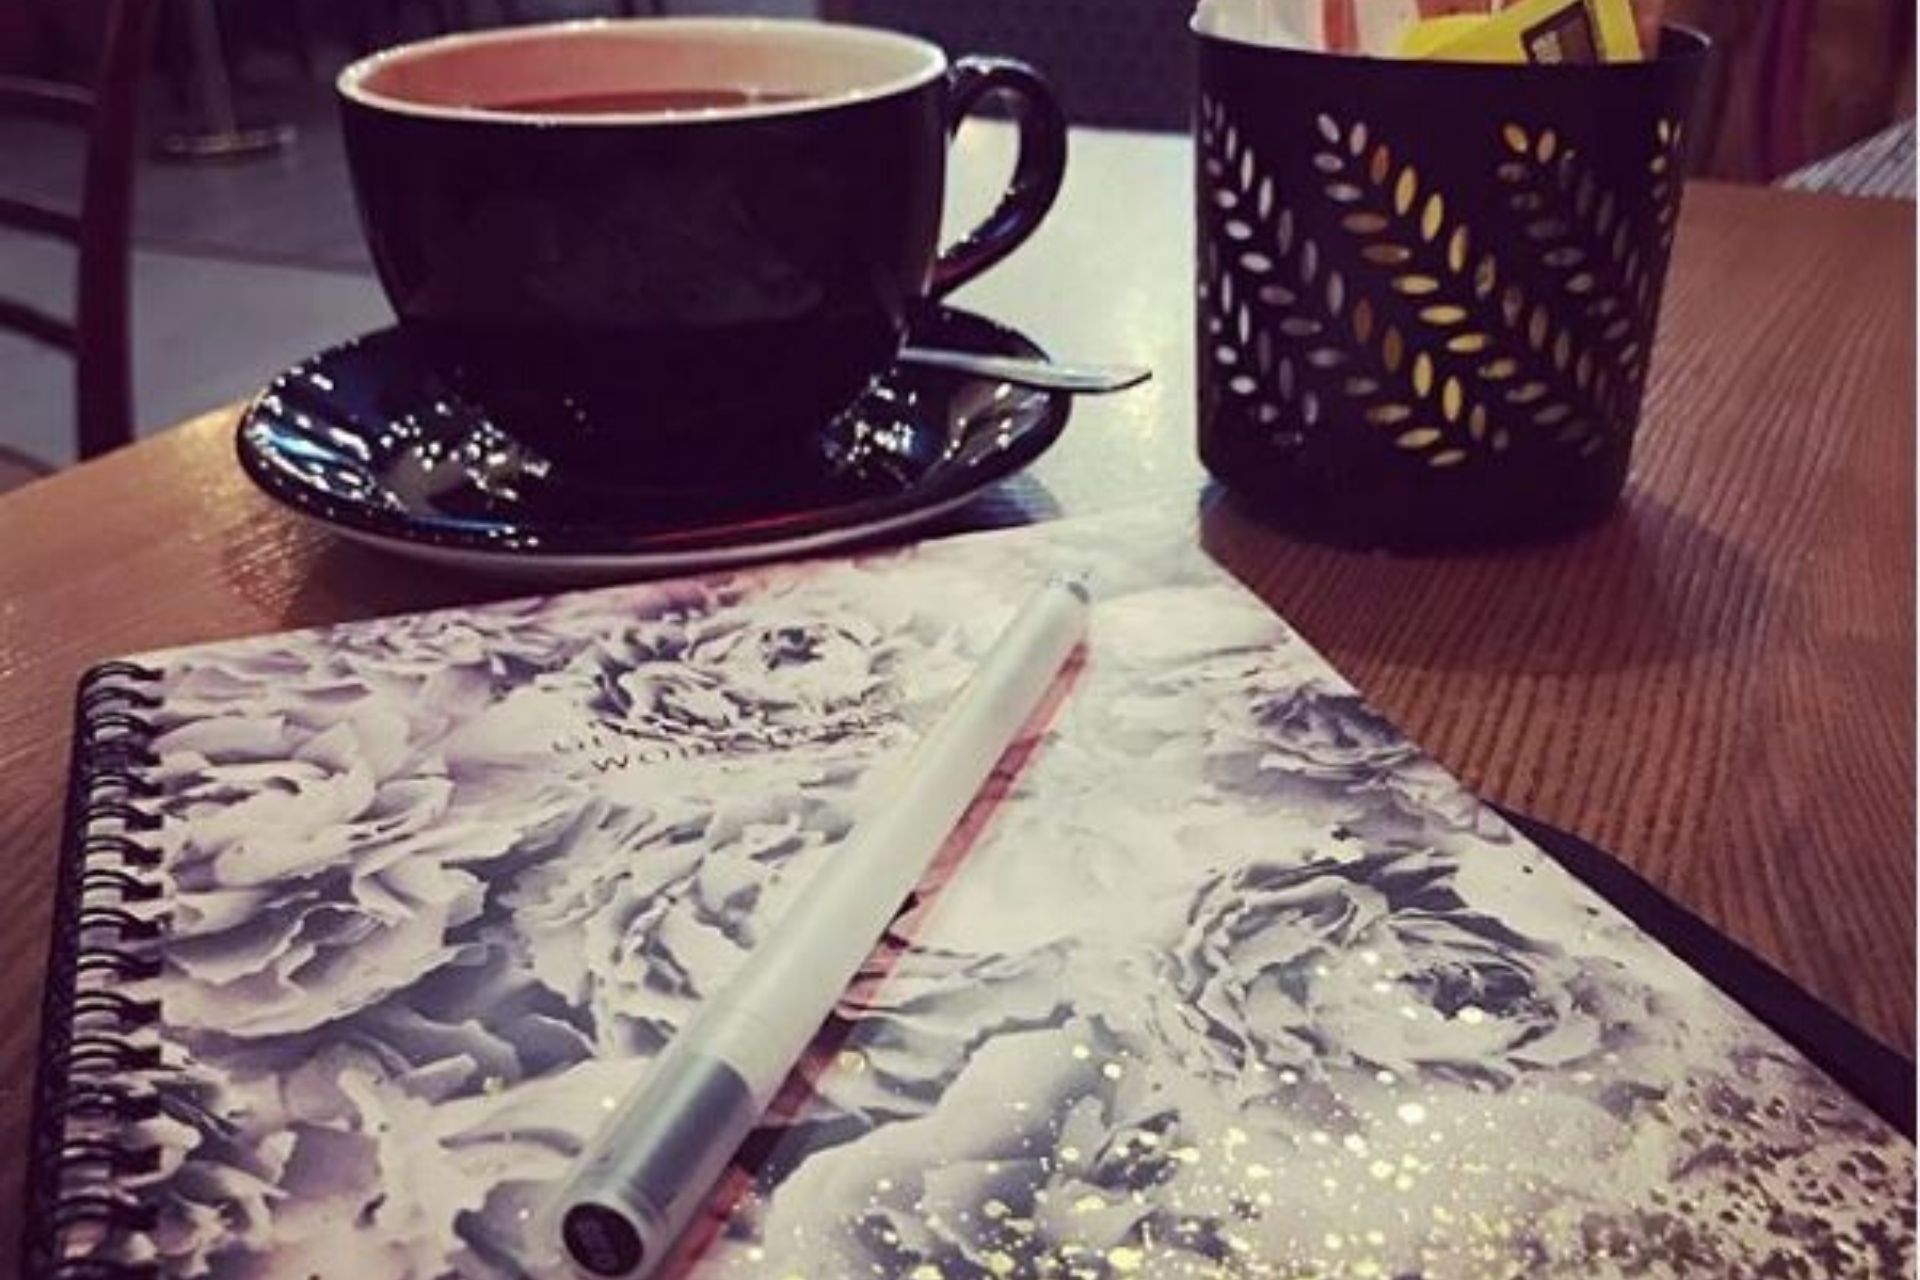 essential writing tools: a notepad, a pen and coffee